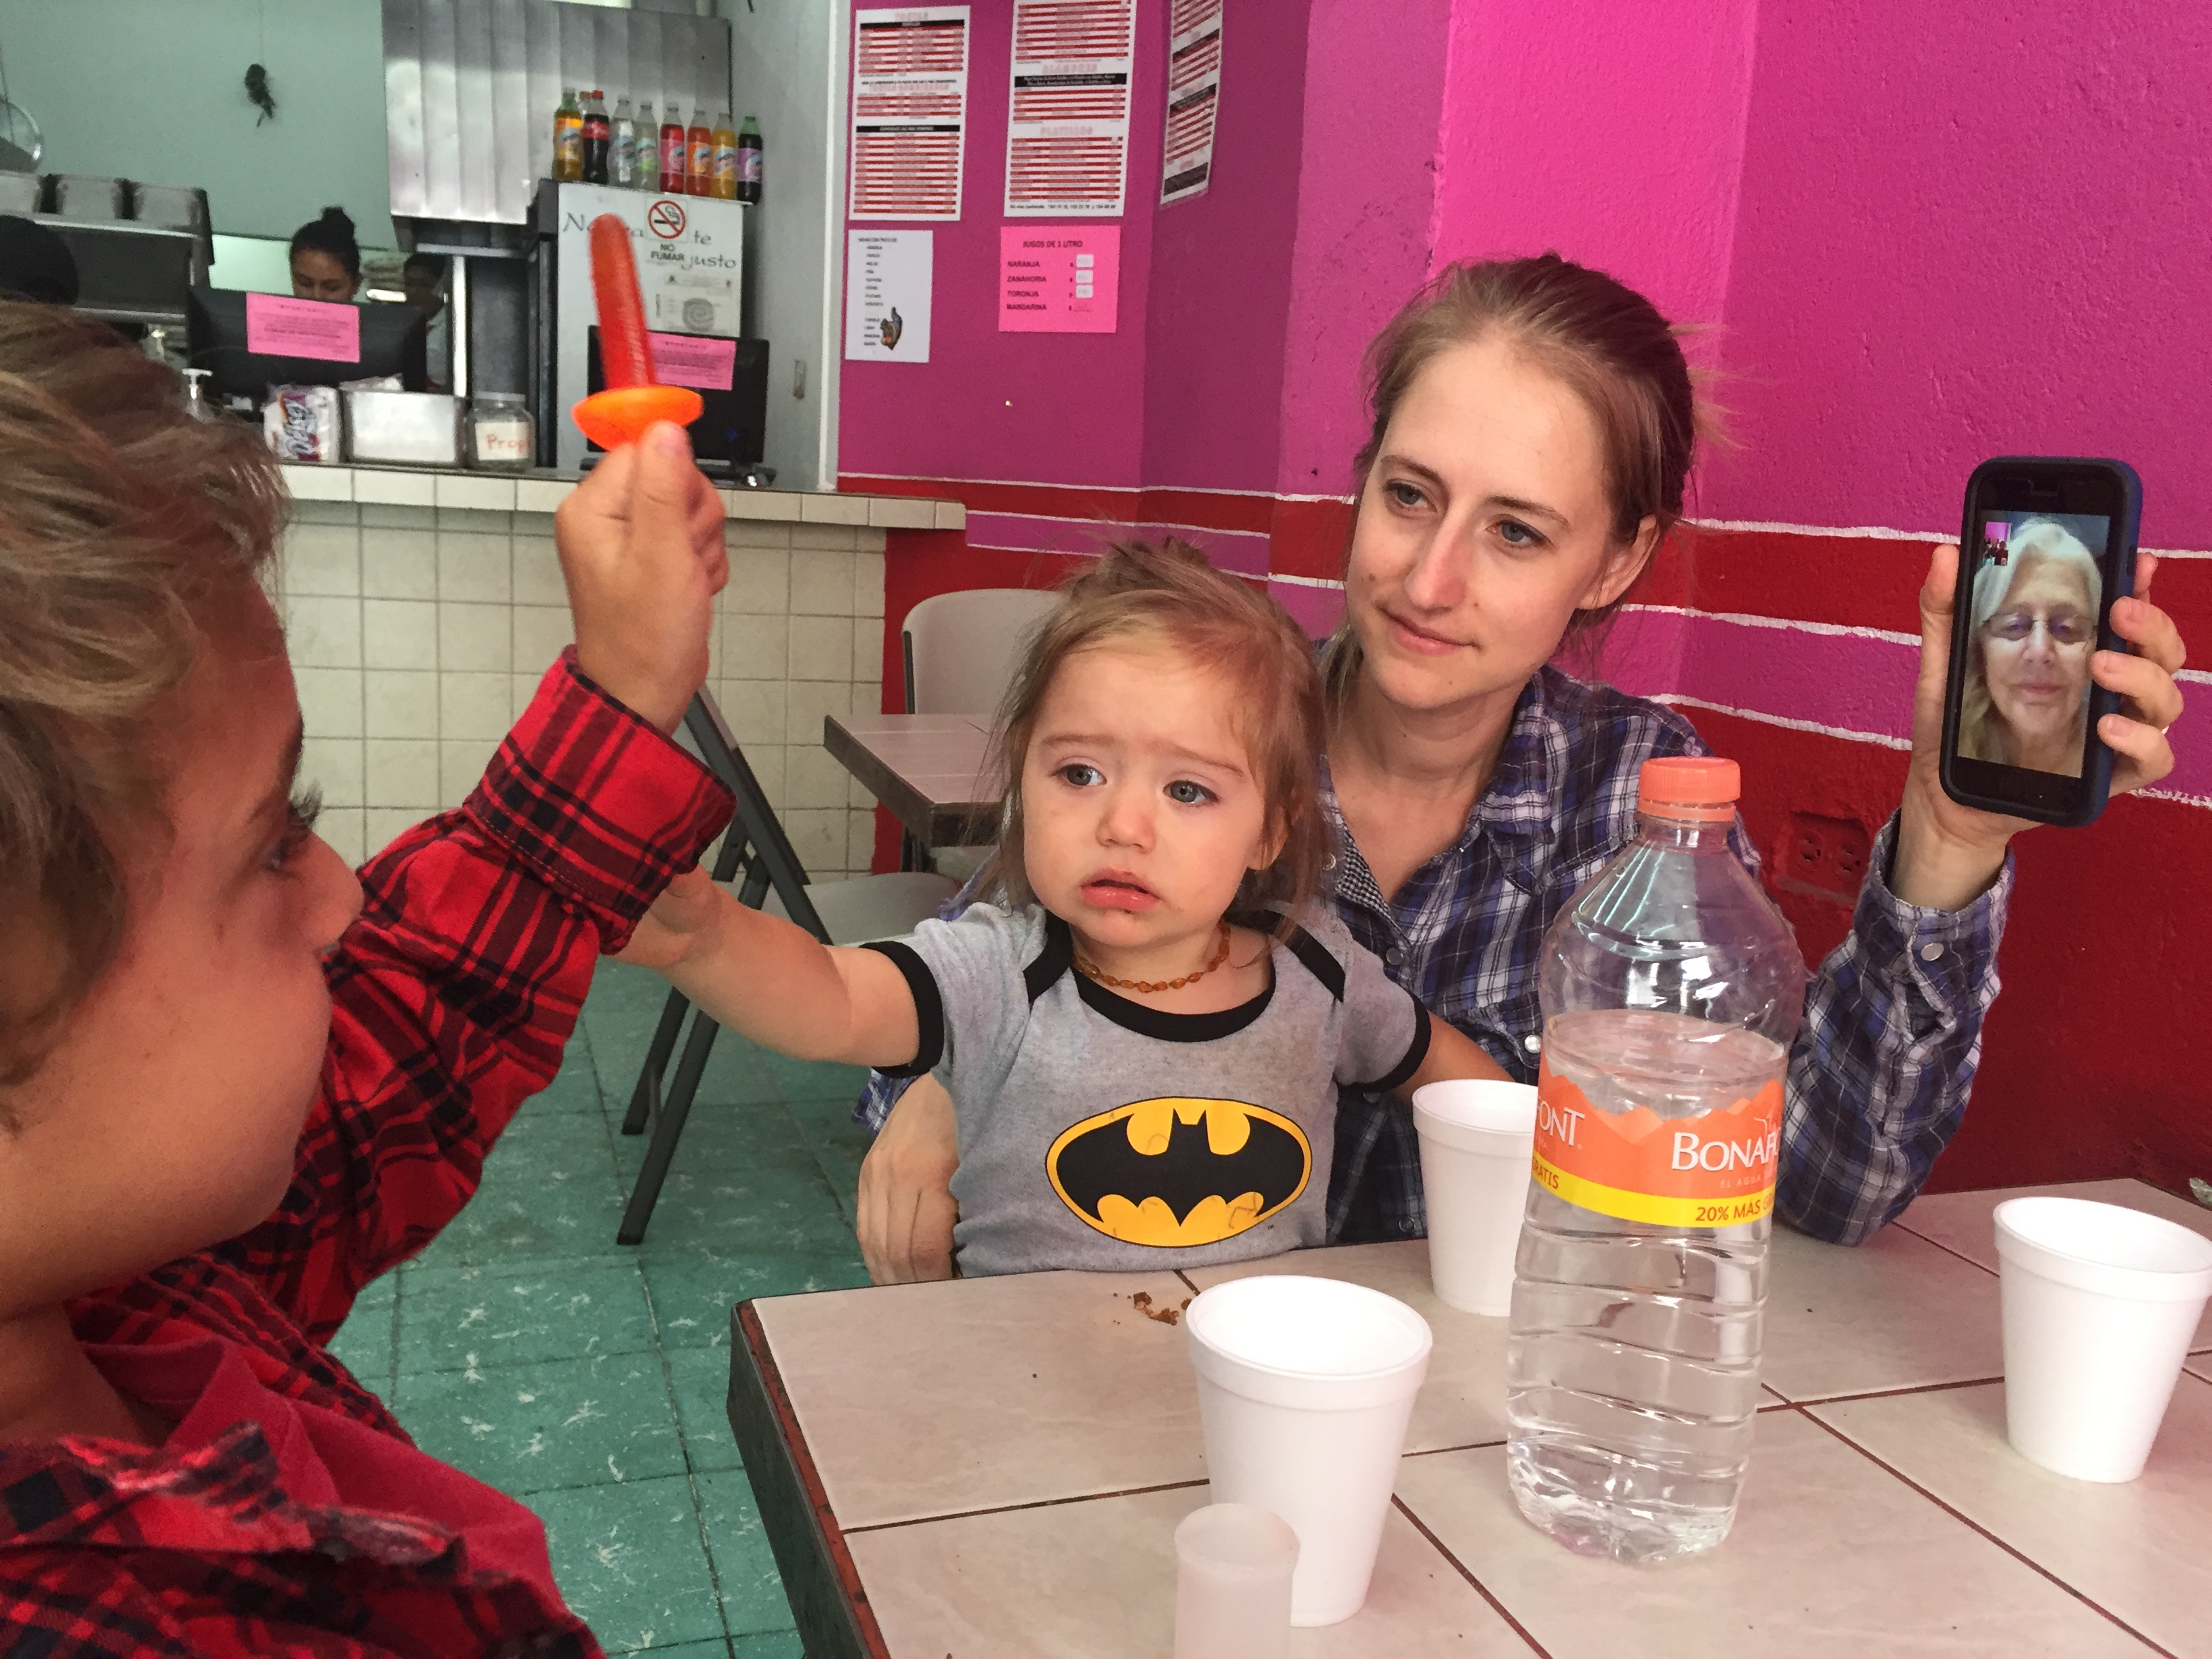 Woman sitting at table with two small children, holding up phone with another woman on video call